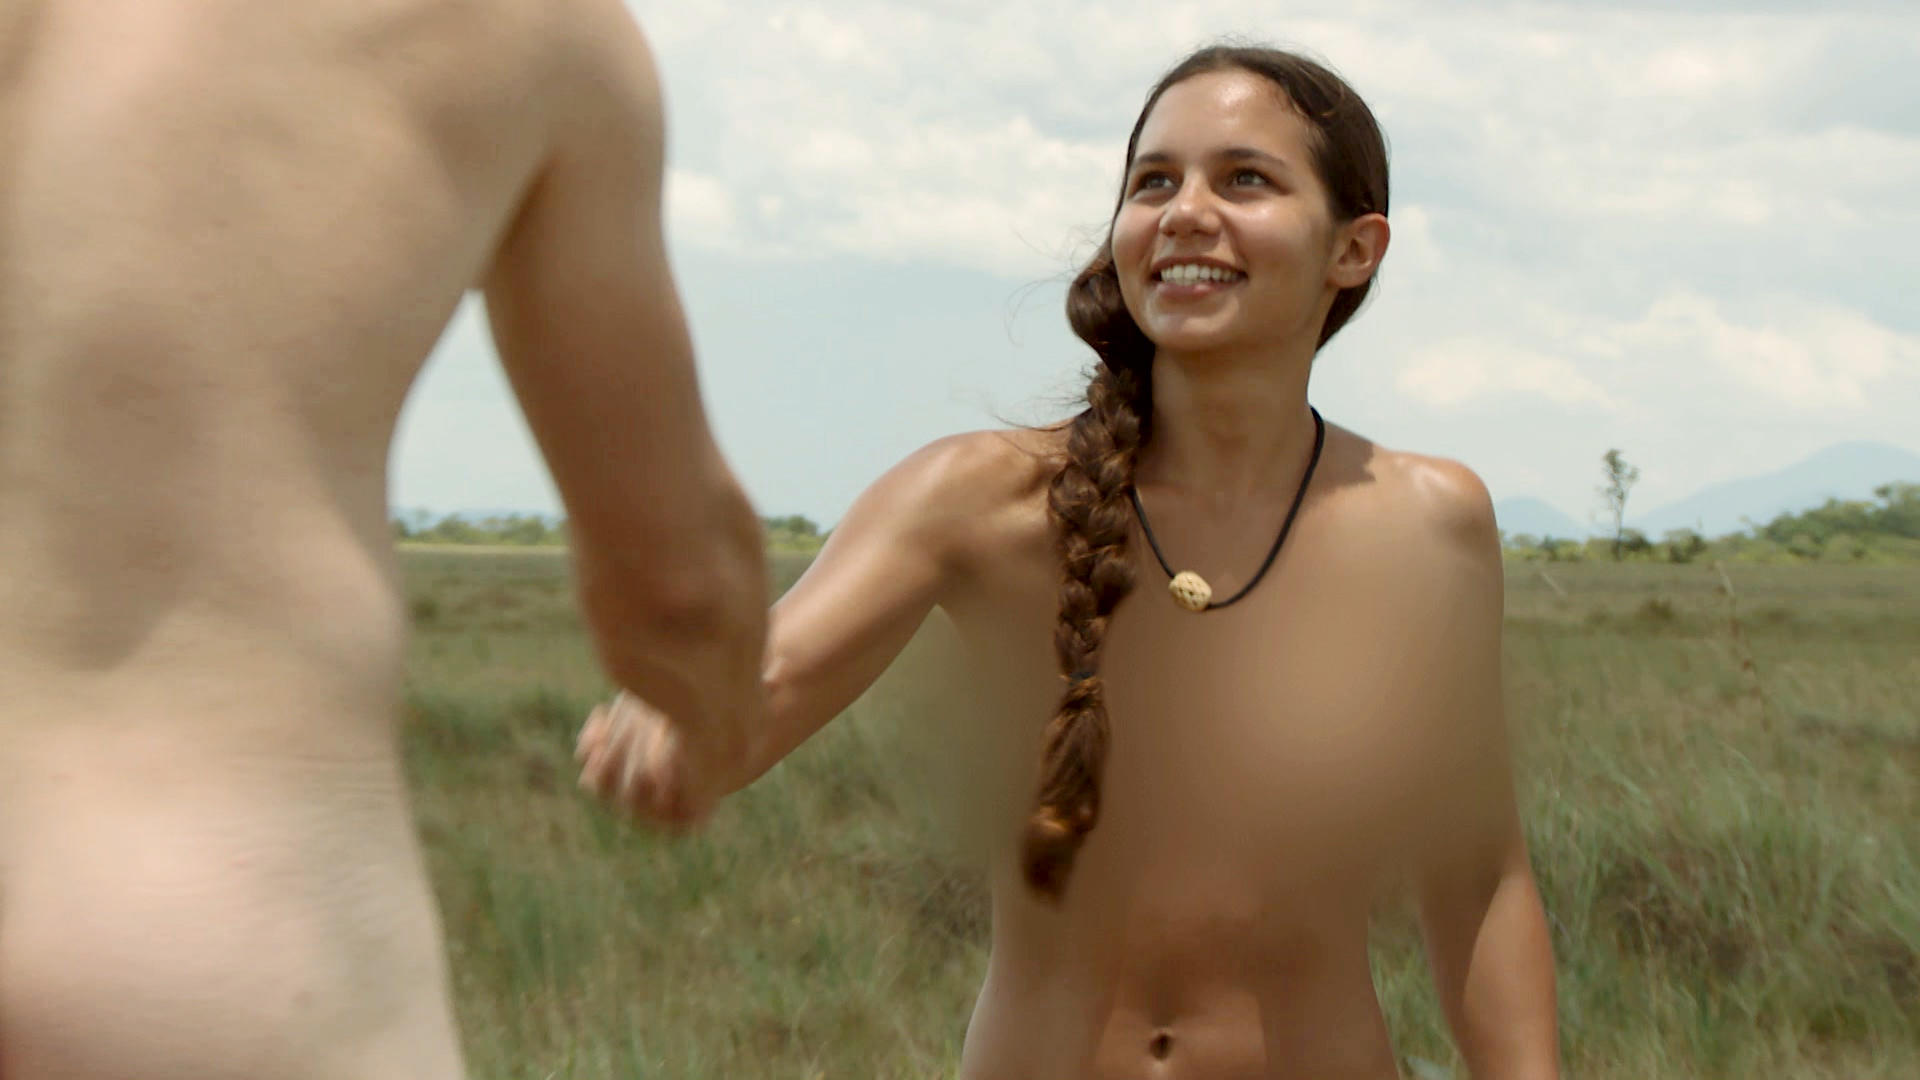 from Nikolas ass pics naked and afraid